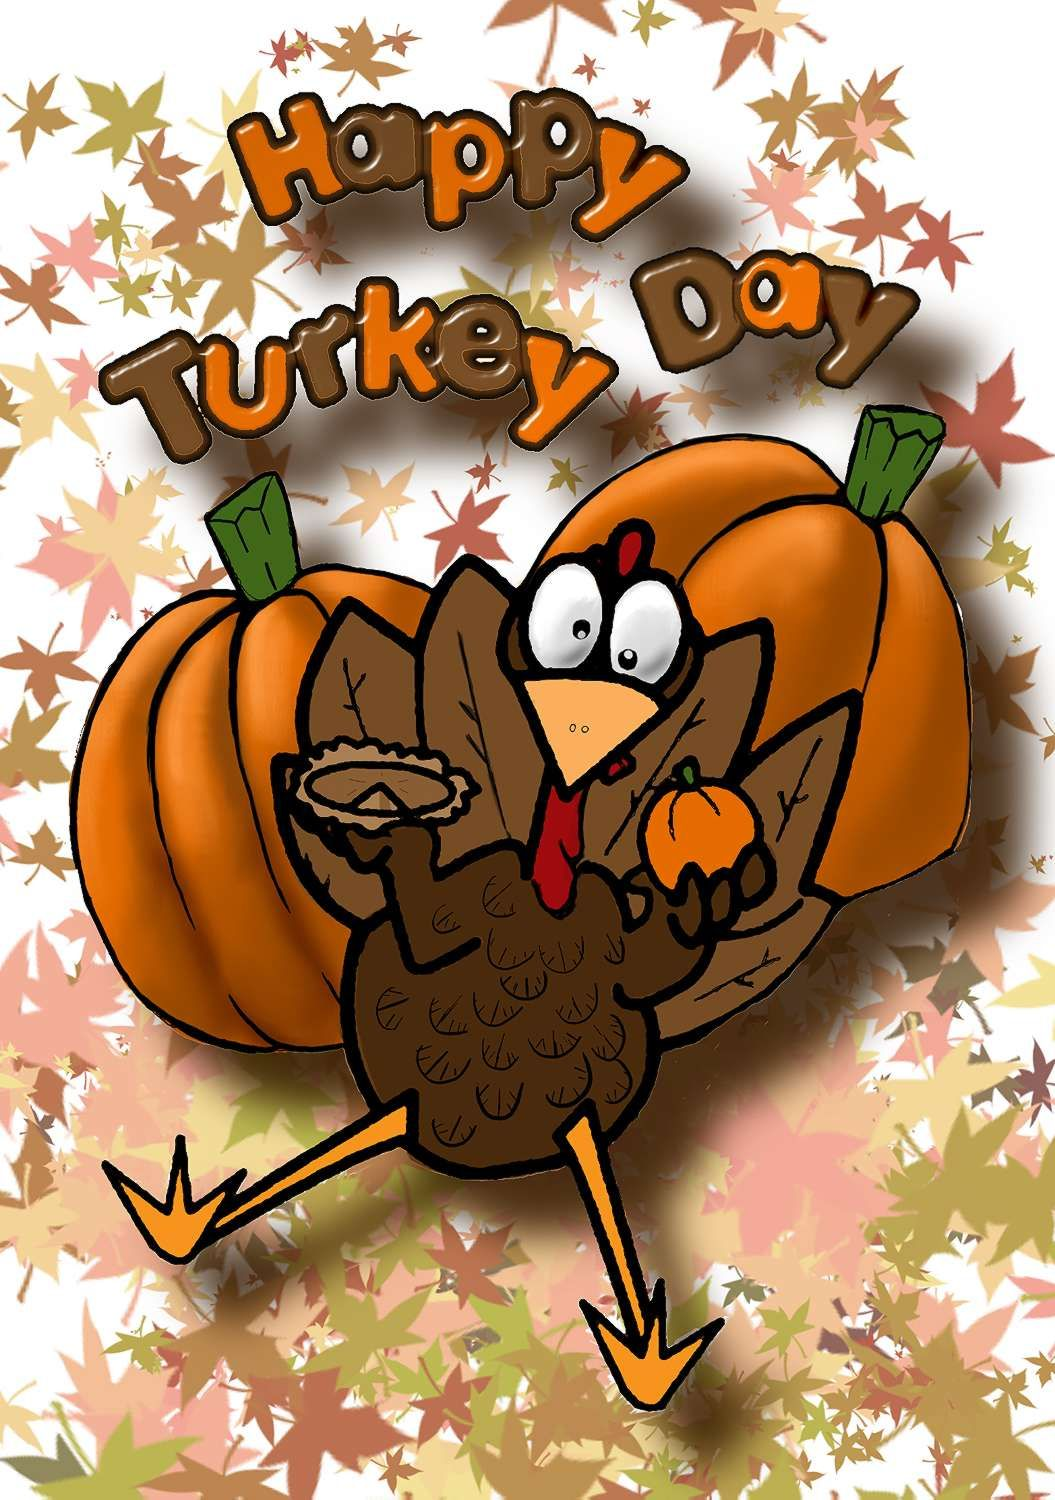 Thanksgiving Profile Pictures for Facebook | Michael Rivers: The Blog: November 2009